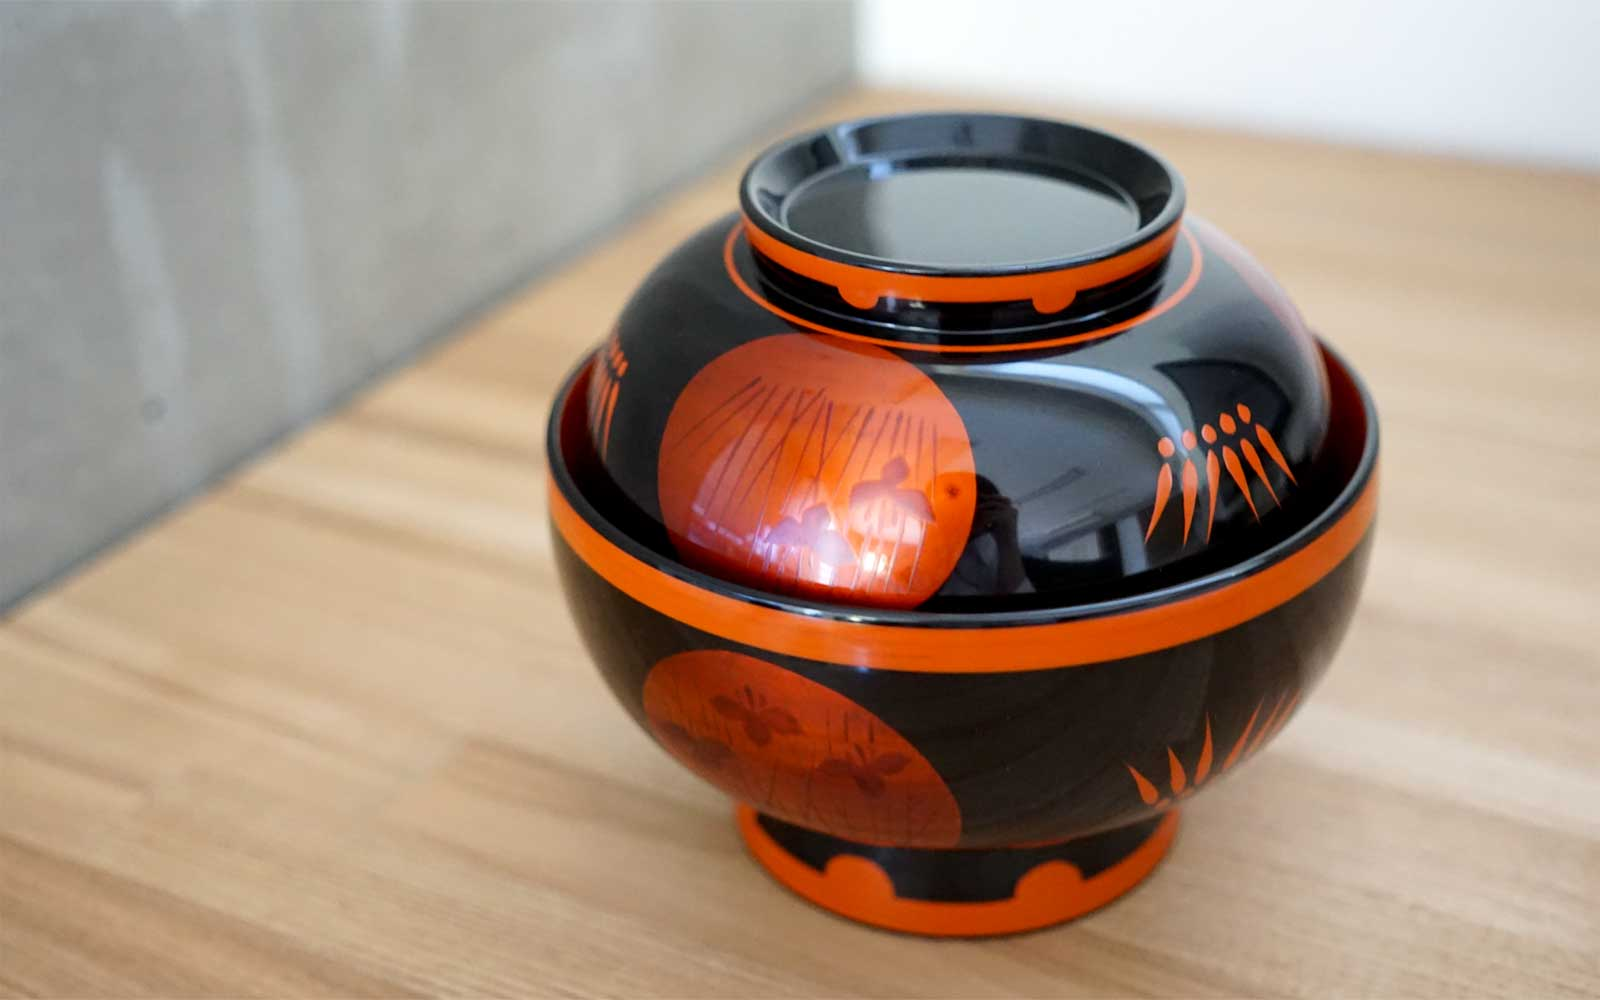 Shobu patterned Jitsugetsu bowl of Byakudan Lacquer is beautiful, too.